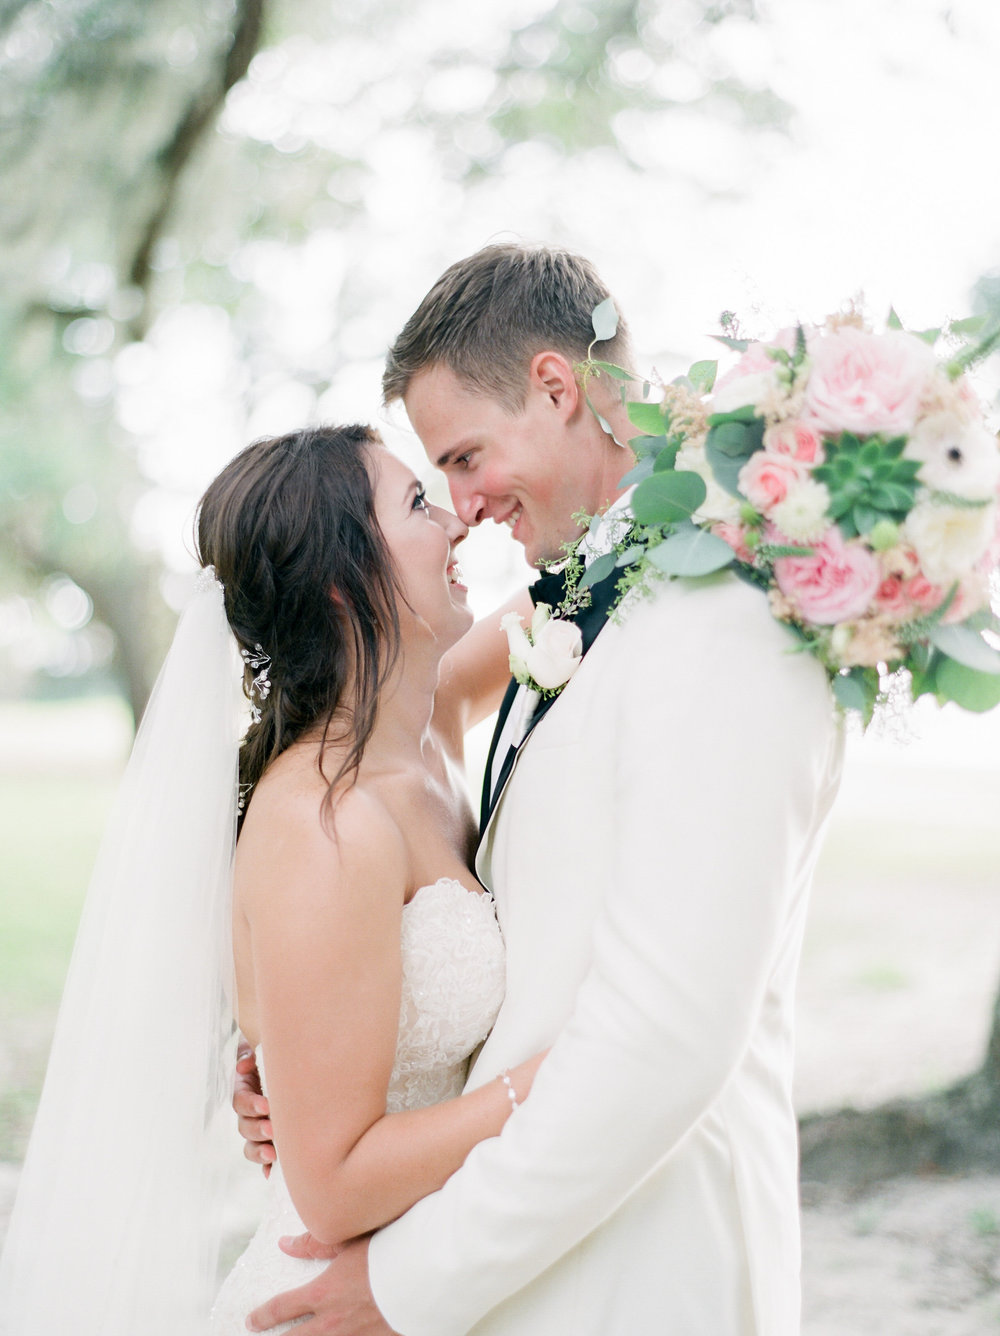 Destin Bay House Wedding - Shawn + Amanda   From the bayside getting ready venue to the all night dancing at the Destin Bay house, Shawn and Amanda's day lacked no detail! Their romantic elements, pops of blush pink and flower girl squad made their wedding day simply elegant!